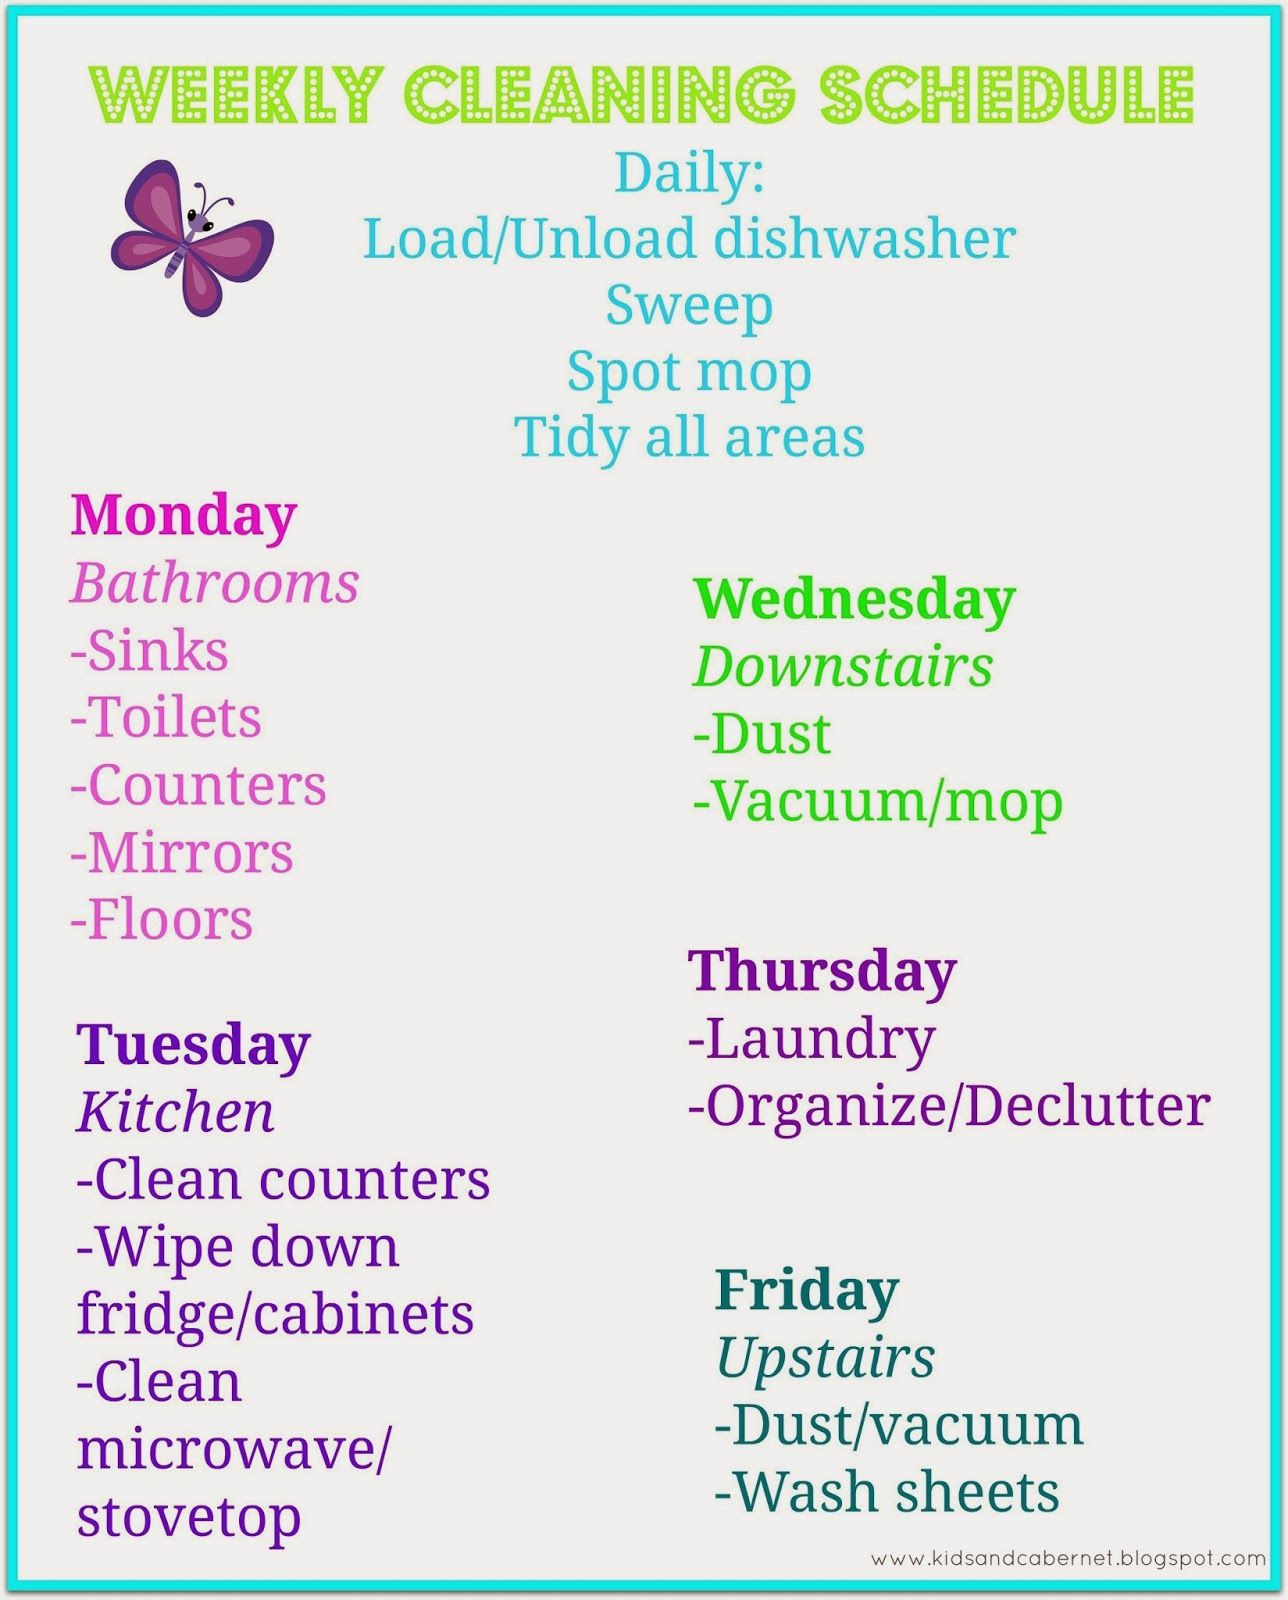 Our cleaning schedule